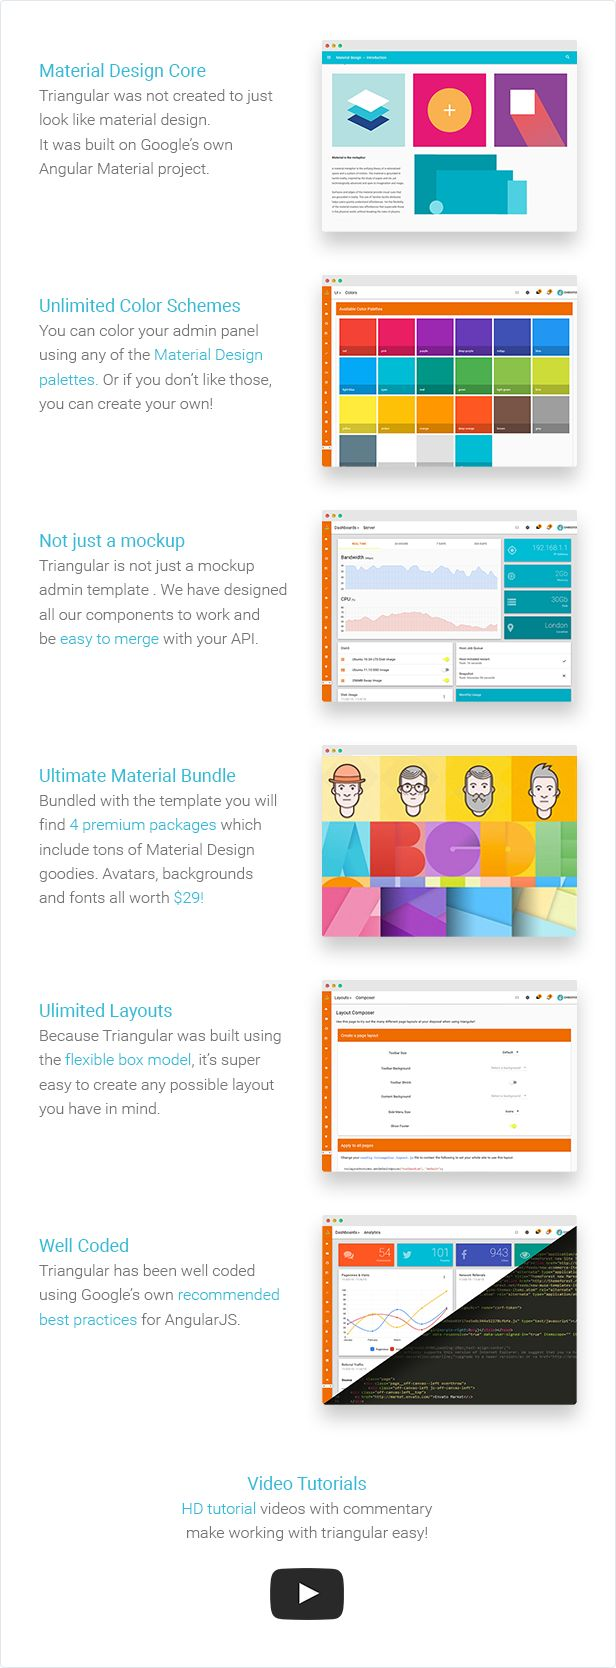 Lots of Material Design Features